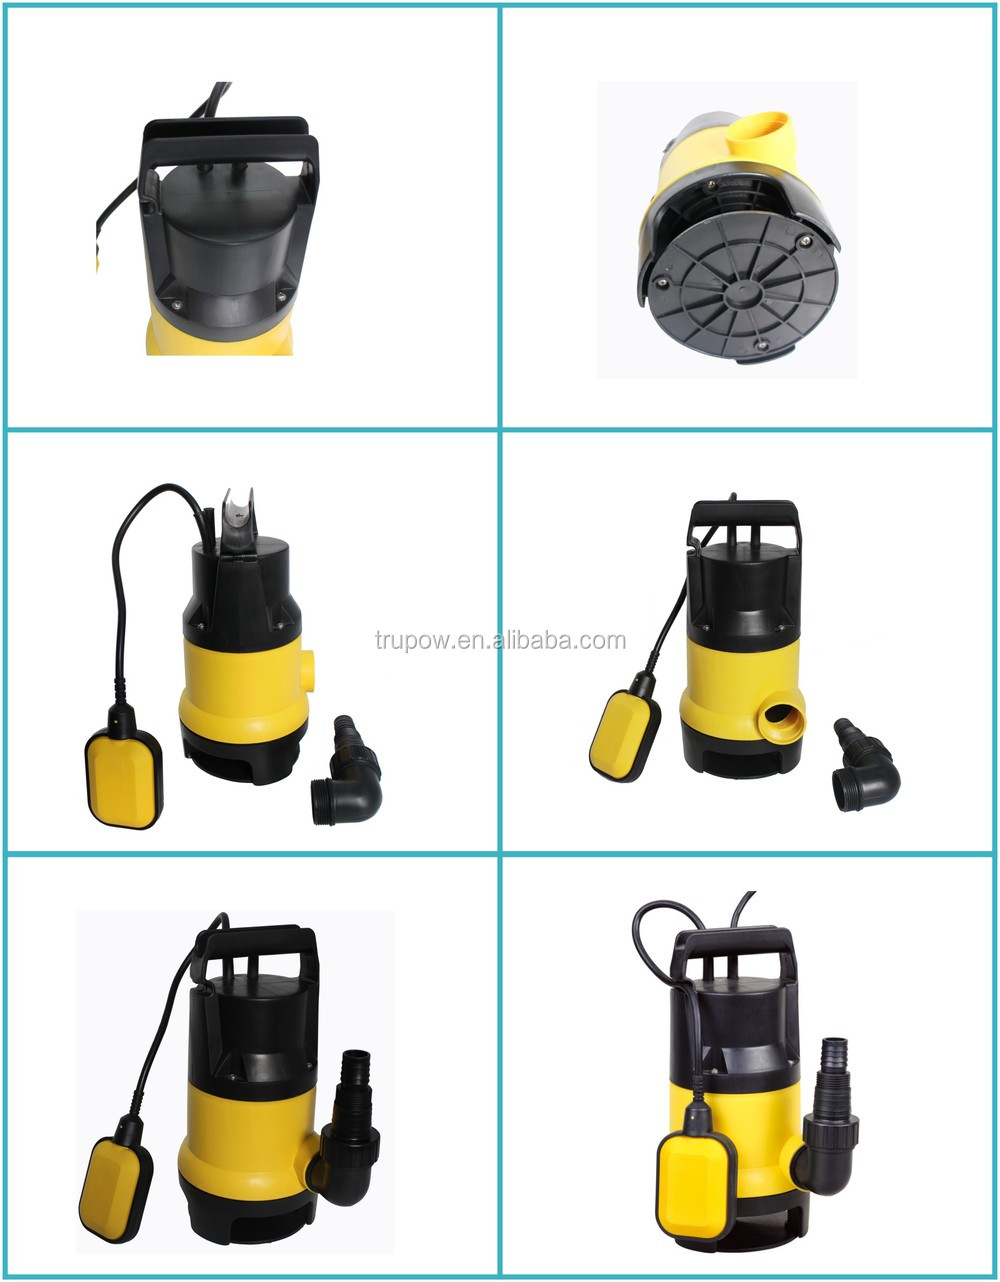 400W Cheap Model Dirty Water Submersible Electric Water Pump For House Use